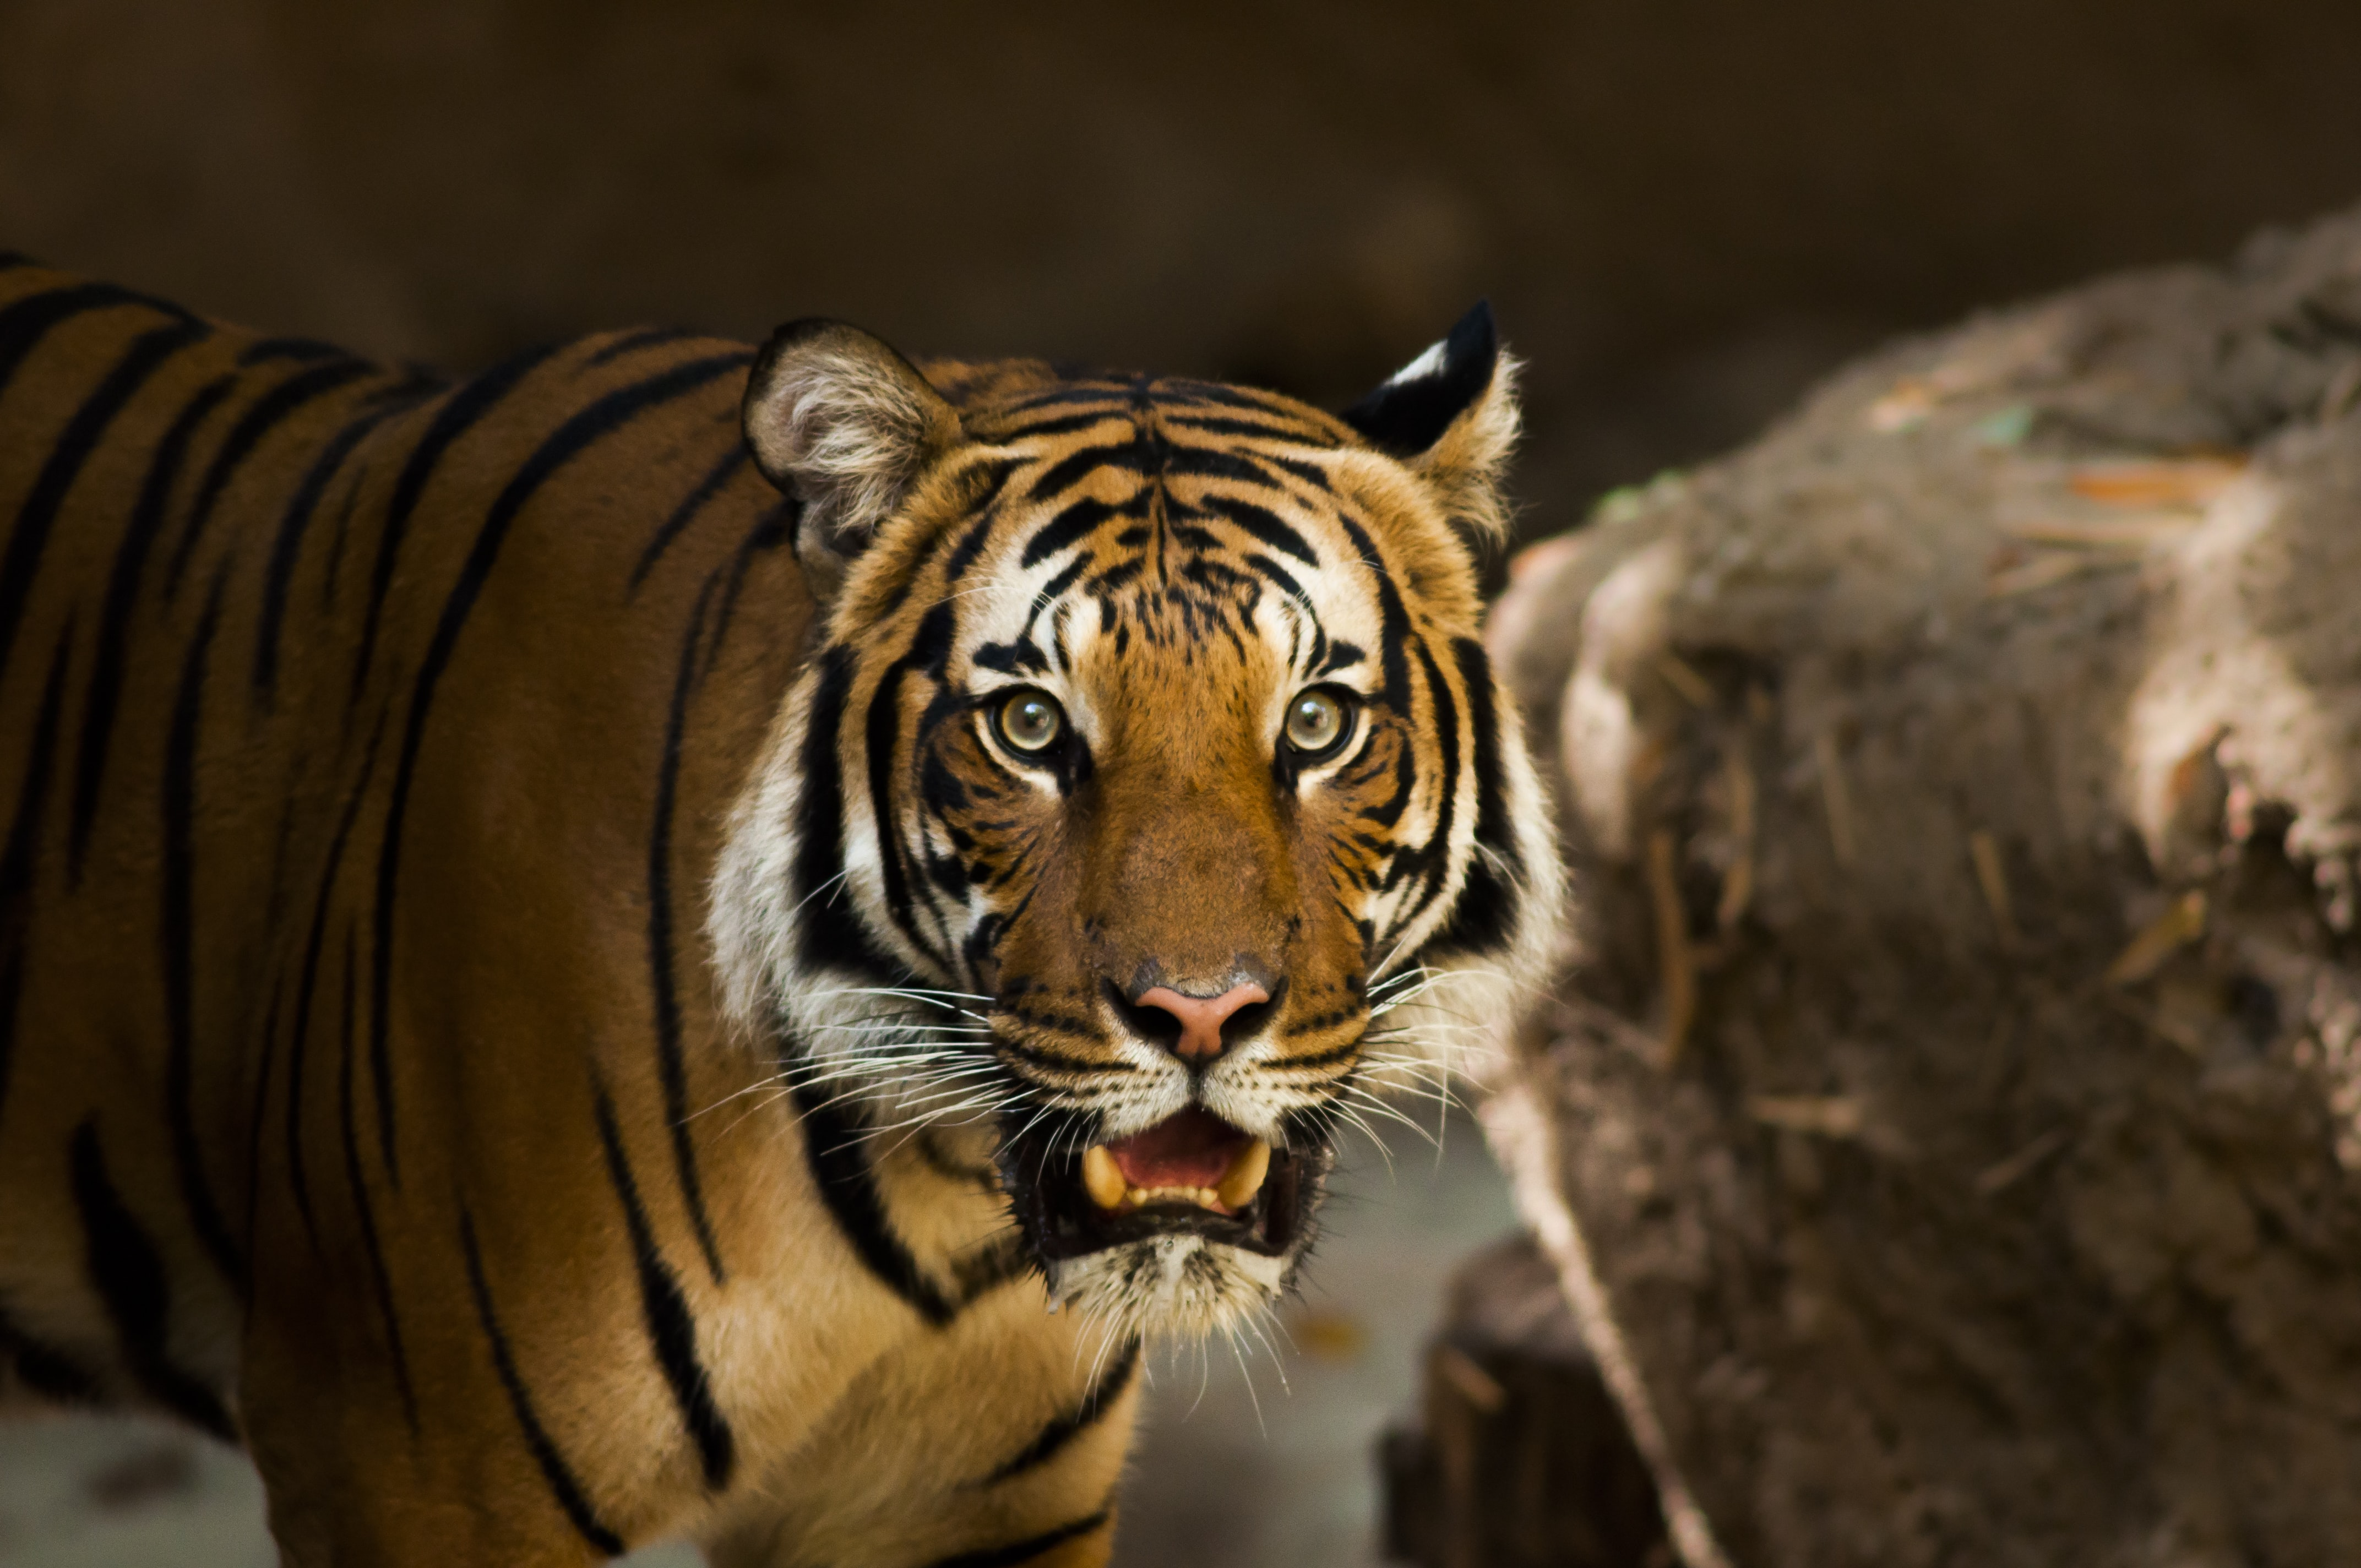 A tiger baring its teeth